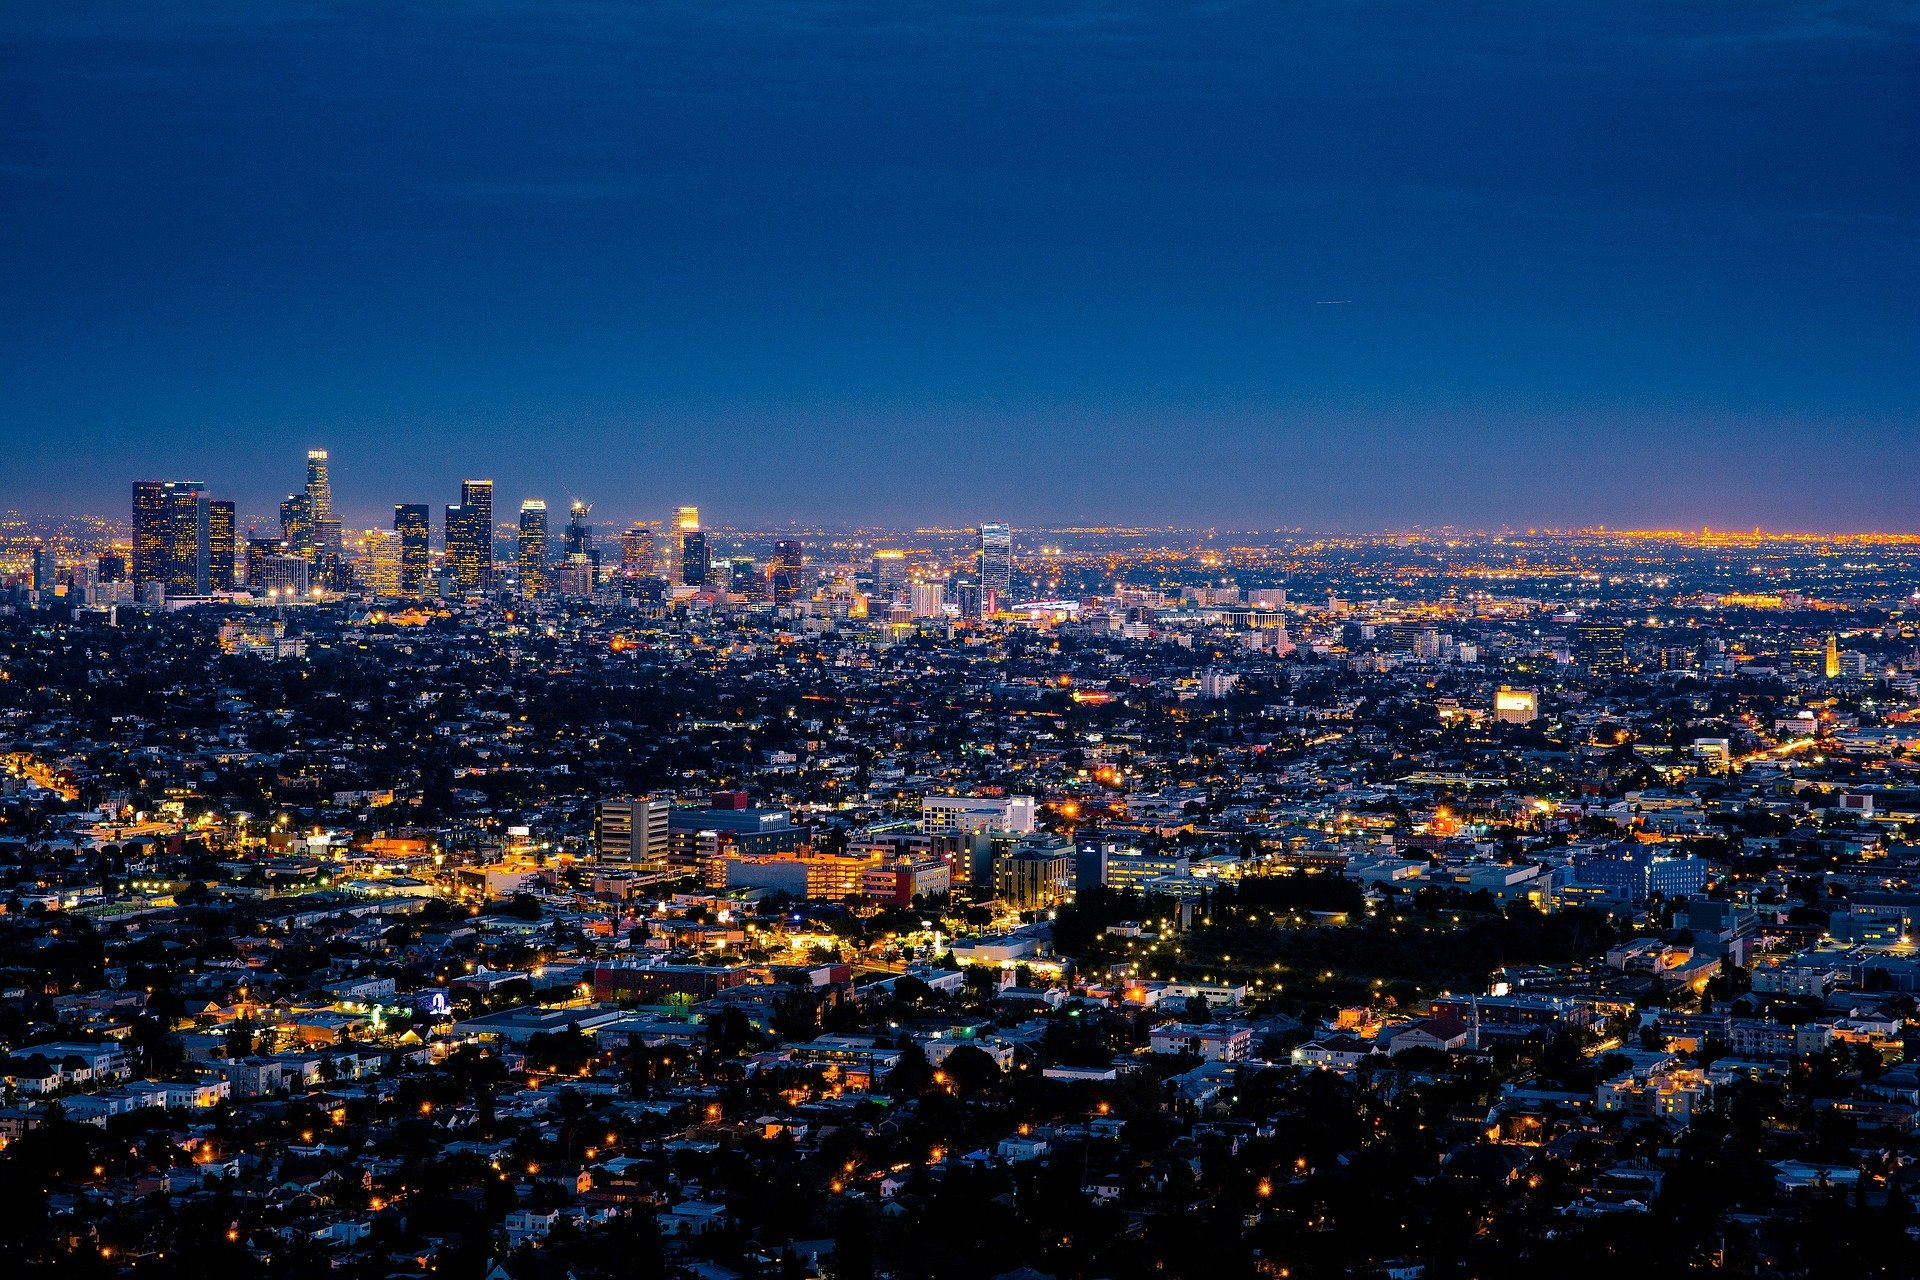 Interview: Background Briefing with Ian Masters (KPFK FM 90.7 Los Angeles)